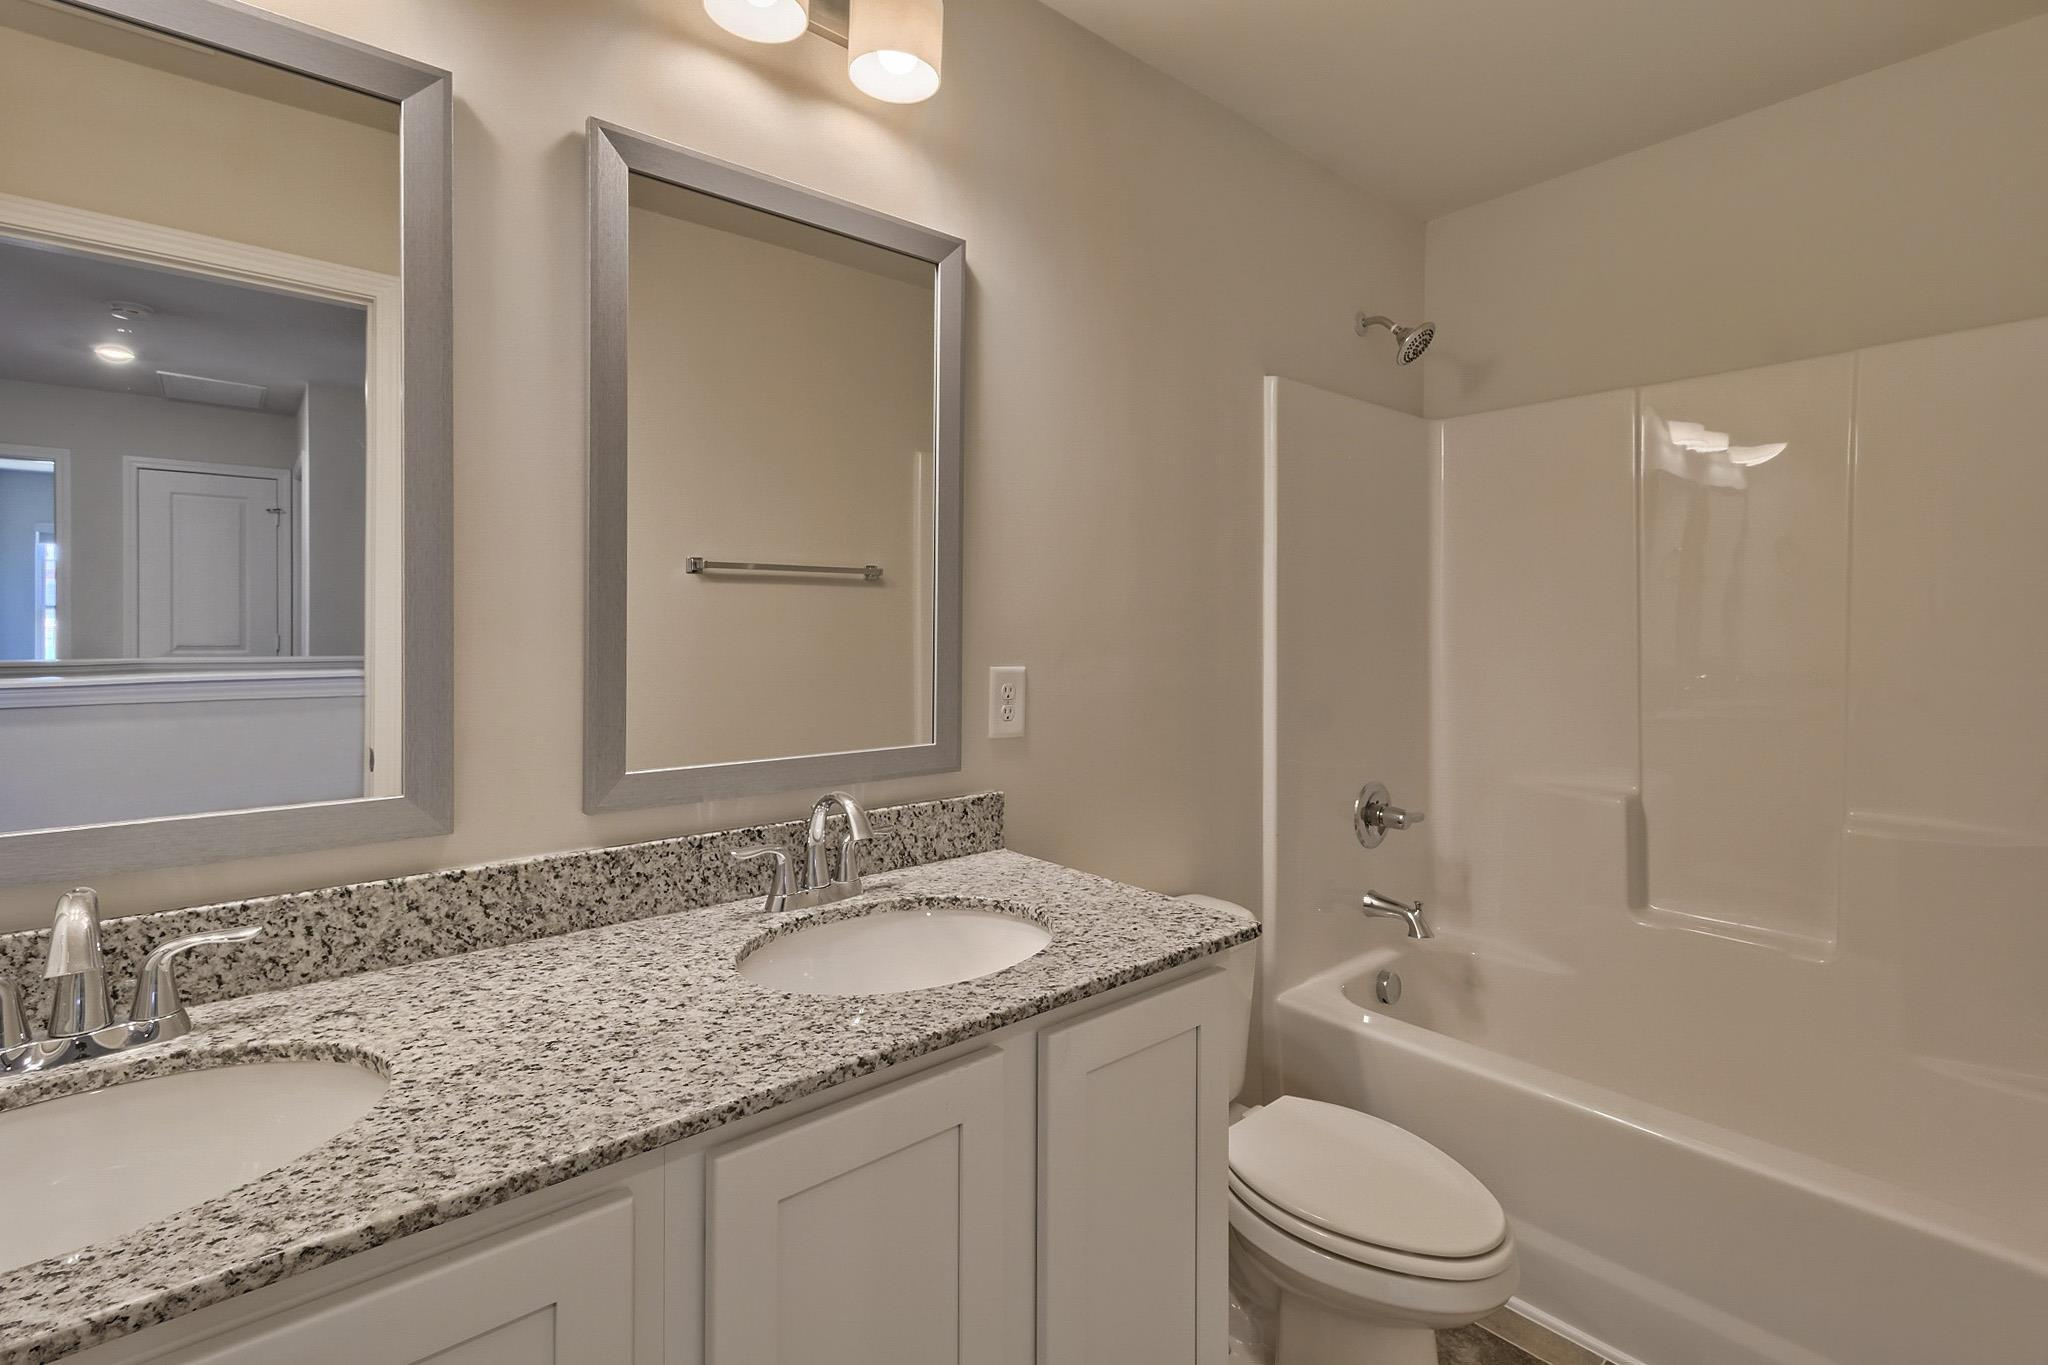 Bathroom featured in the Cypress By McGuinn Hybrid Homes in Columbia, SC